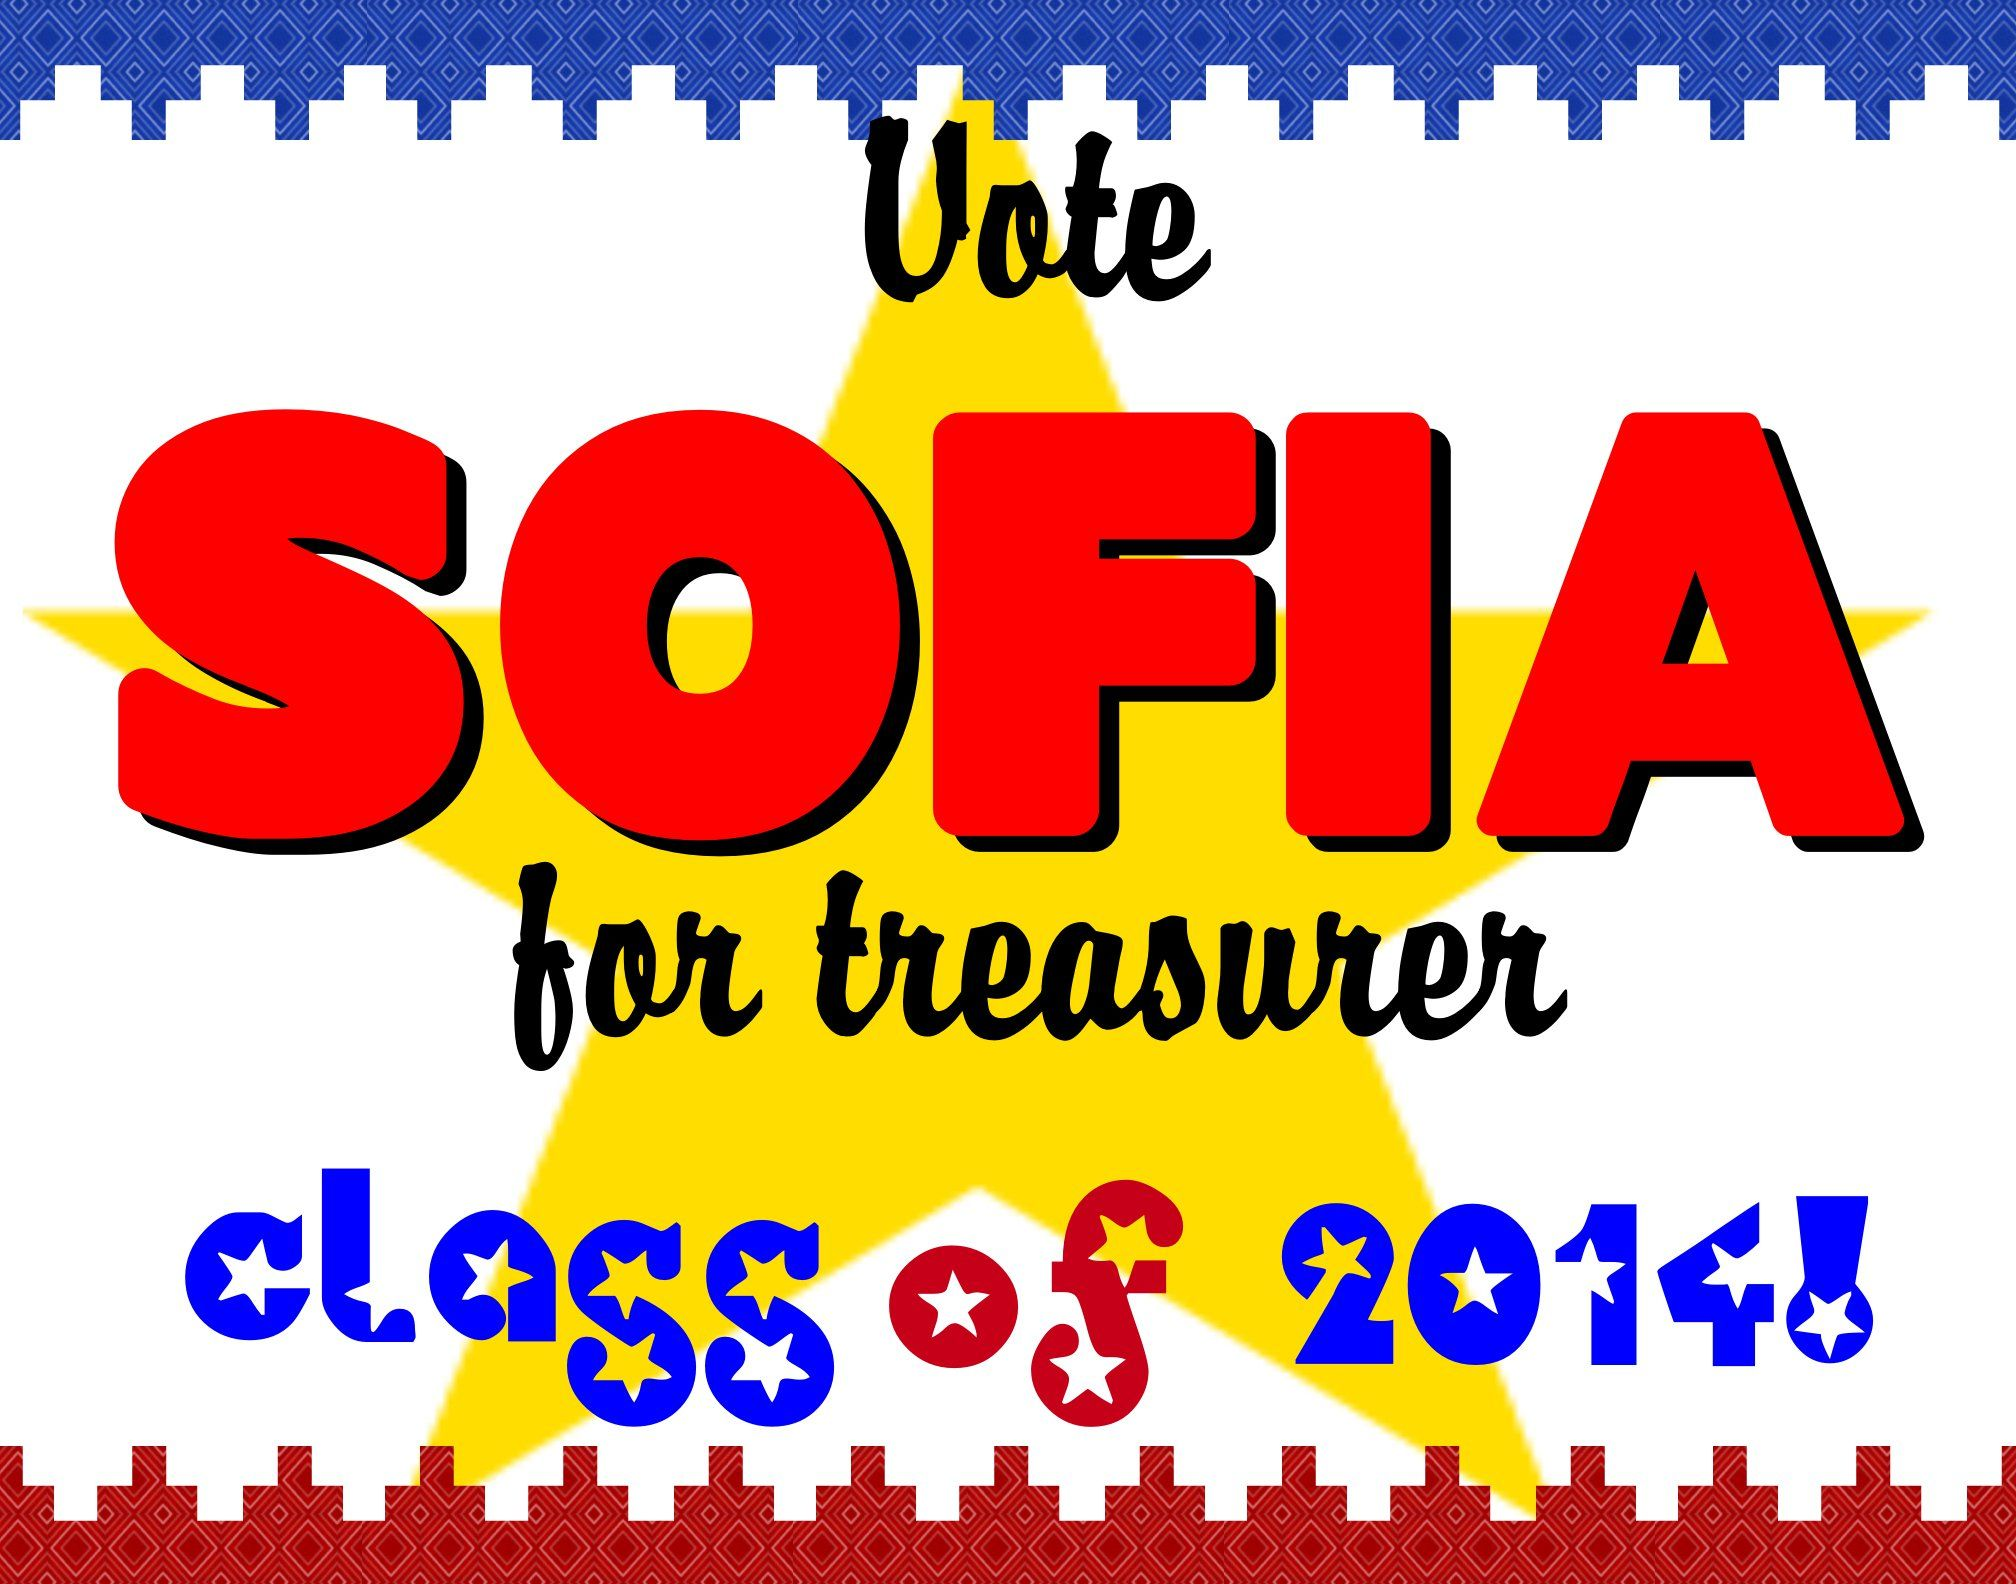 make a class president election poster school election poster how to make a class election poster vote for me poster idea class treasurer poster idea